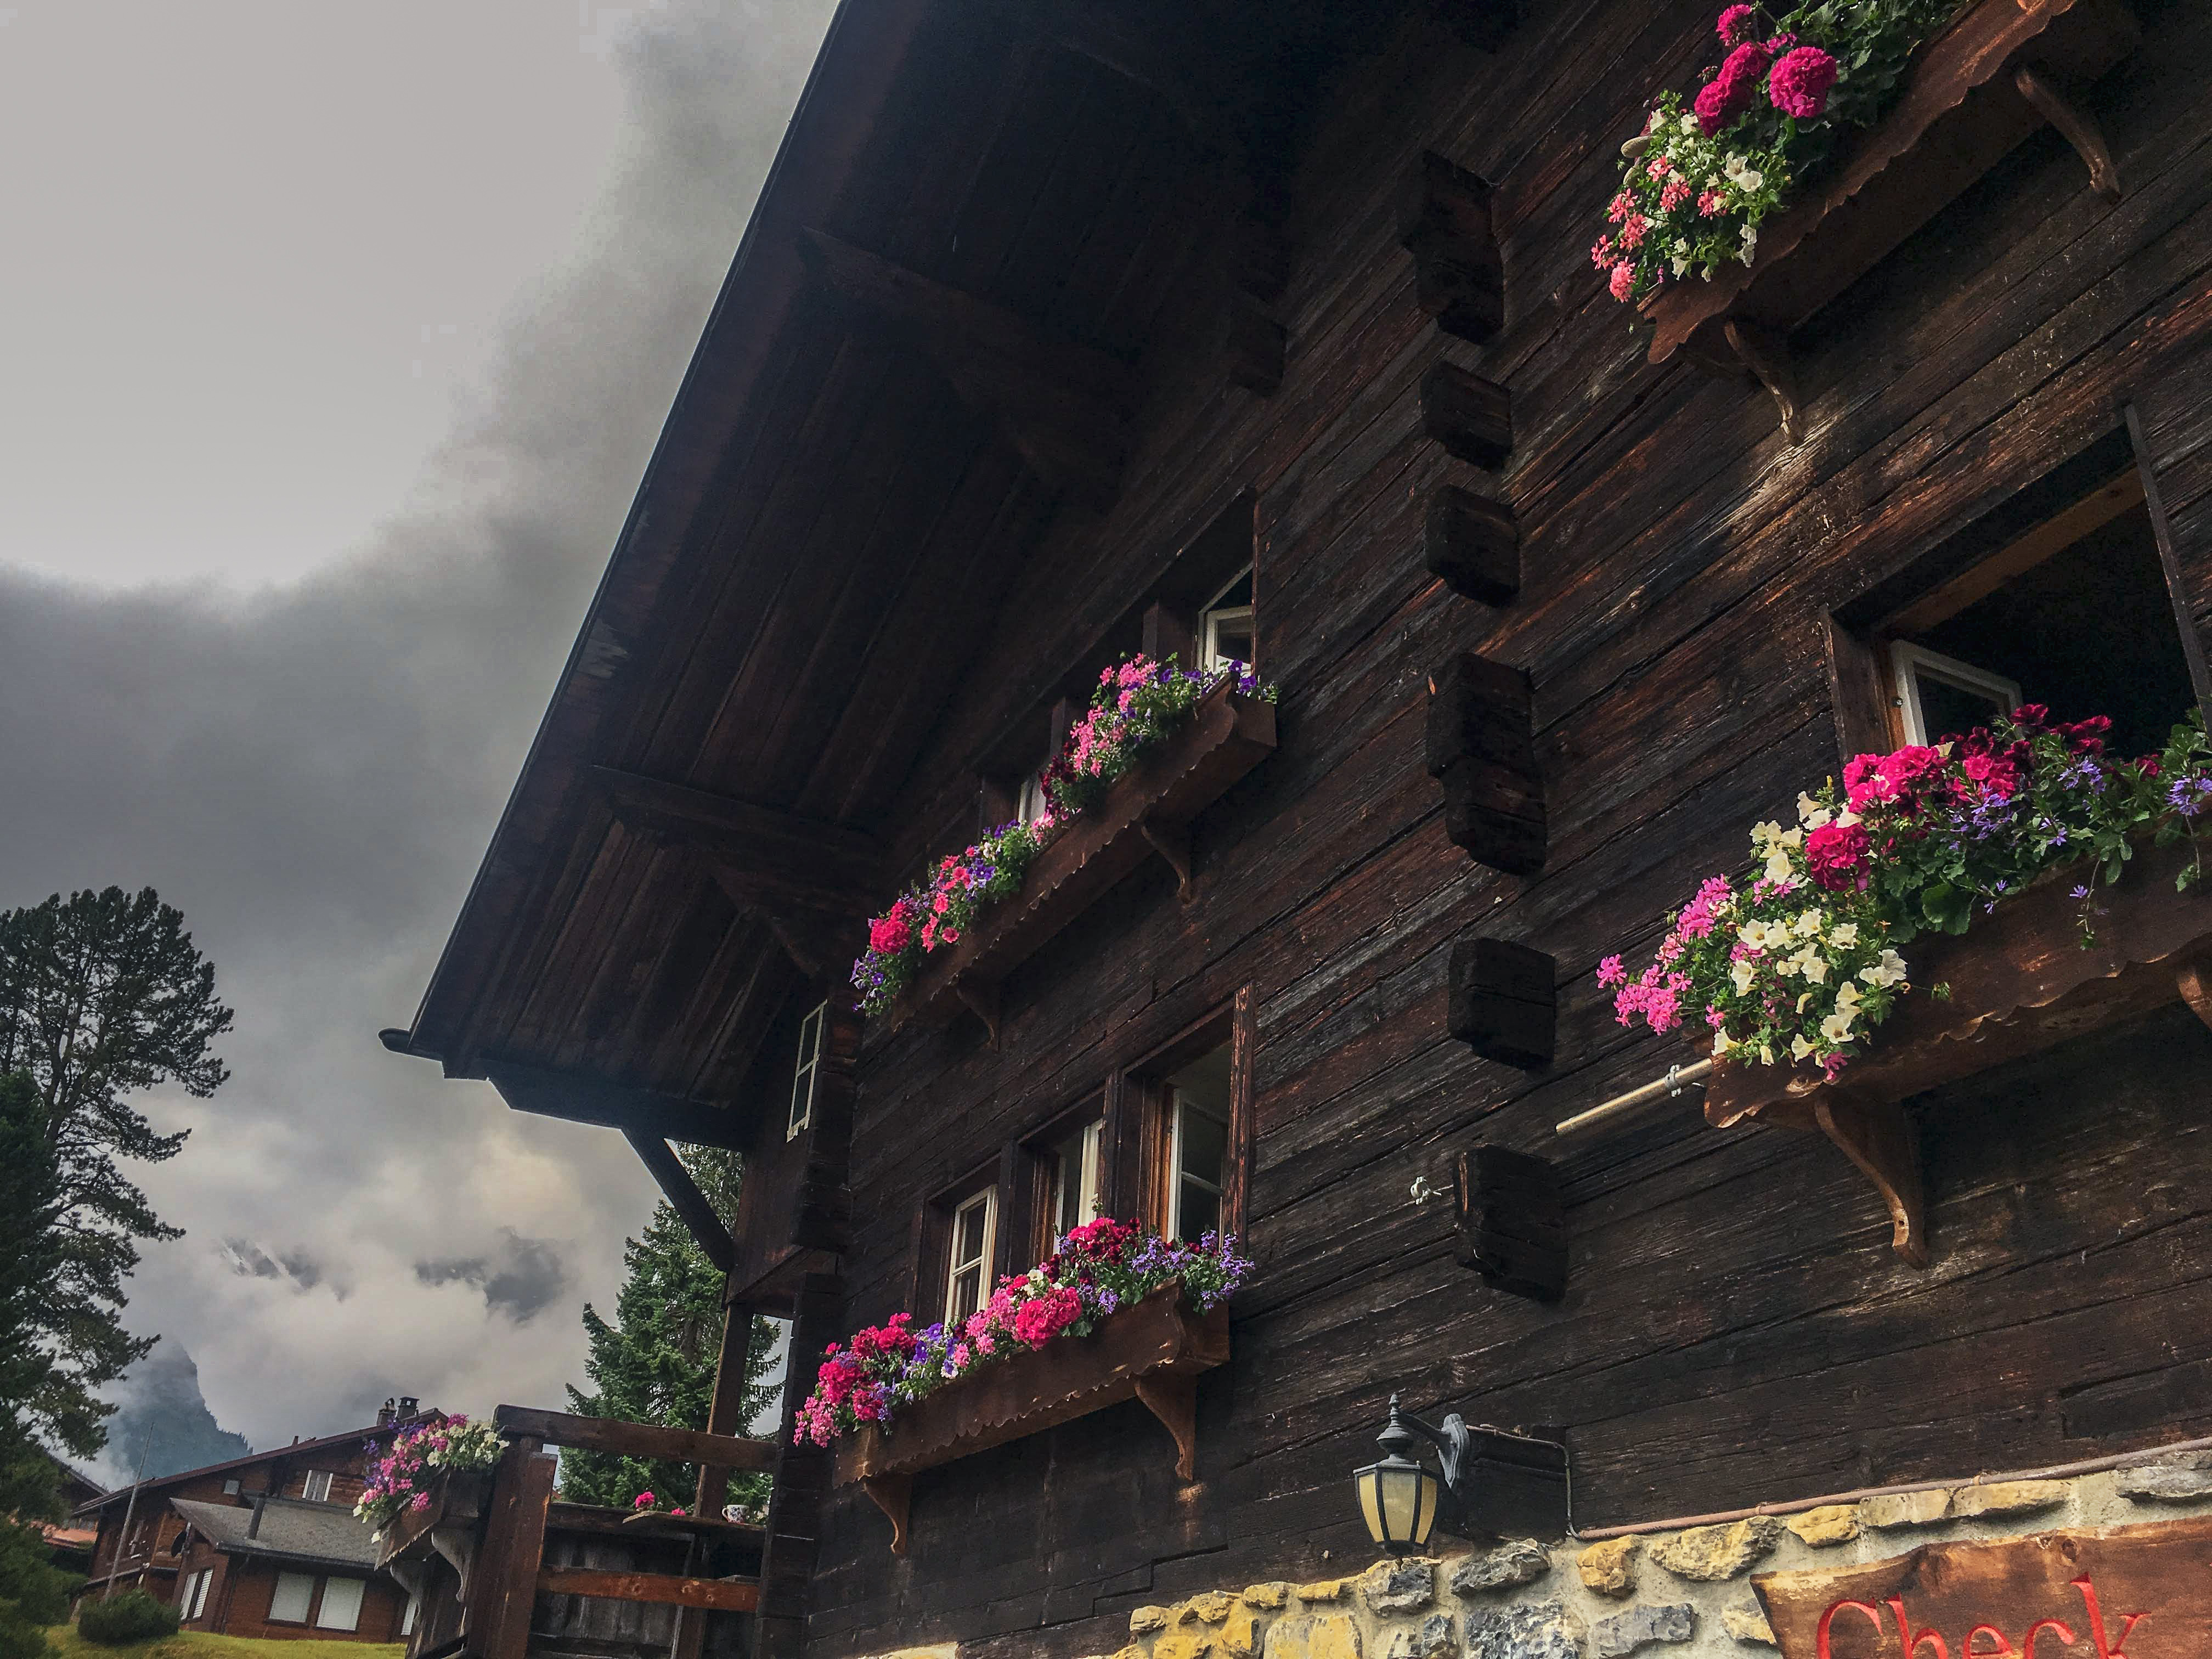 Mountain Hostel, Gimmelwald